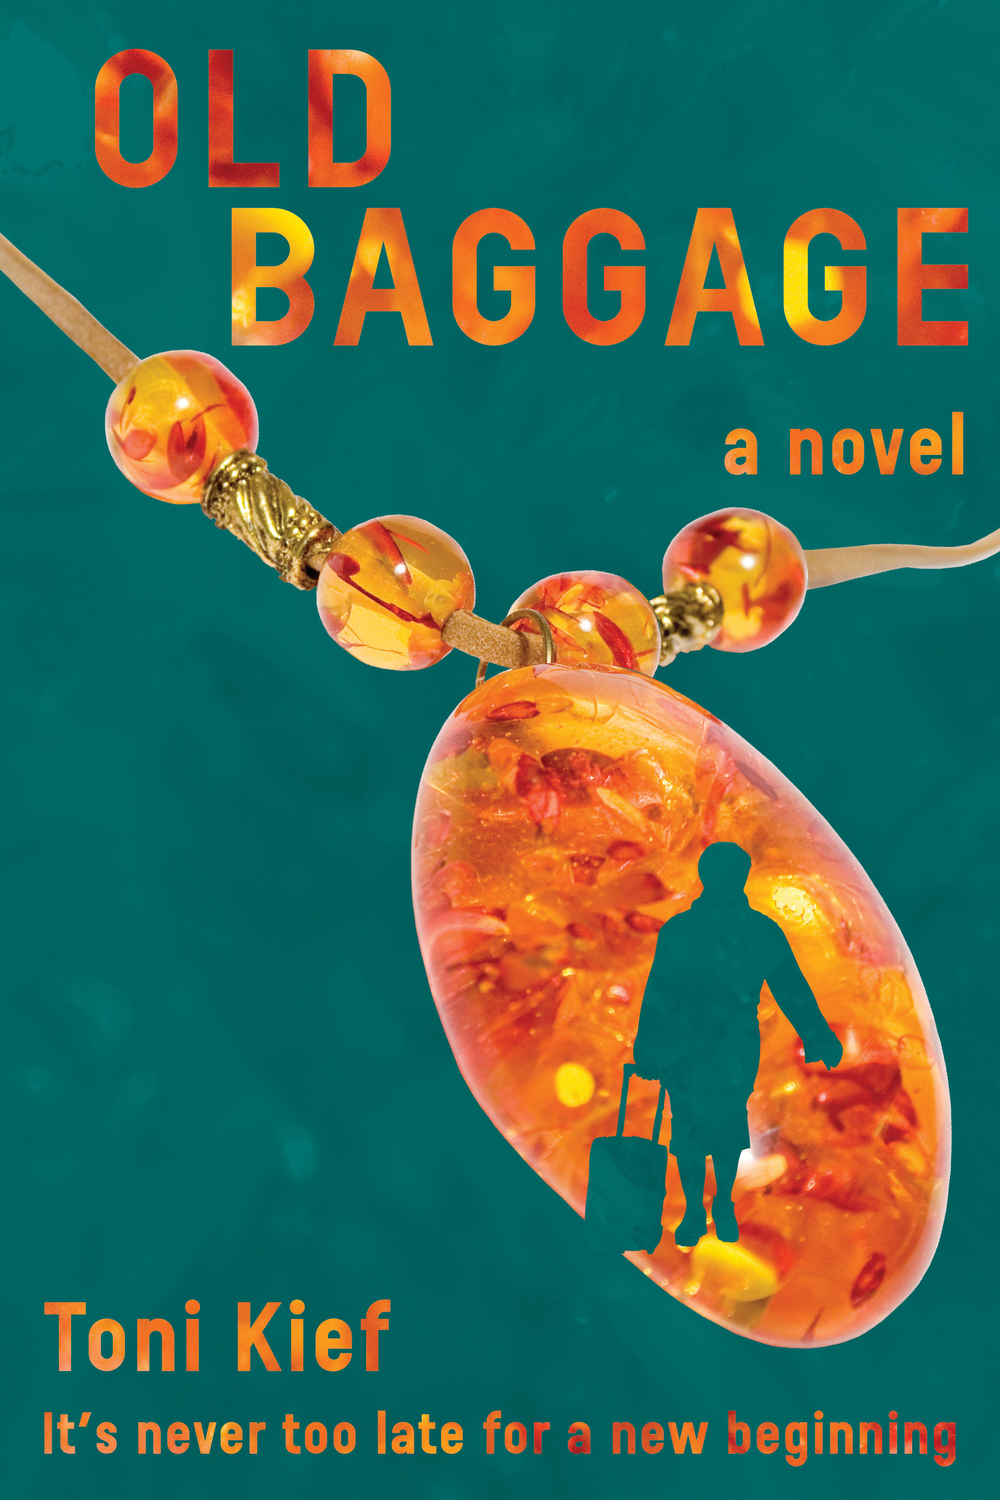 Old Baggage Available in paperback and on Kindle. Cover artwork and interior layout design provided by Cover&Layout